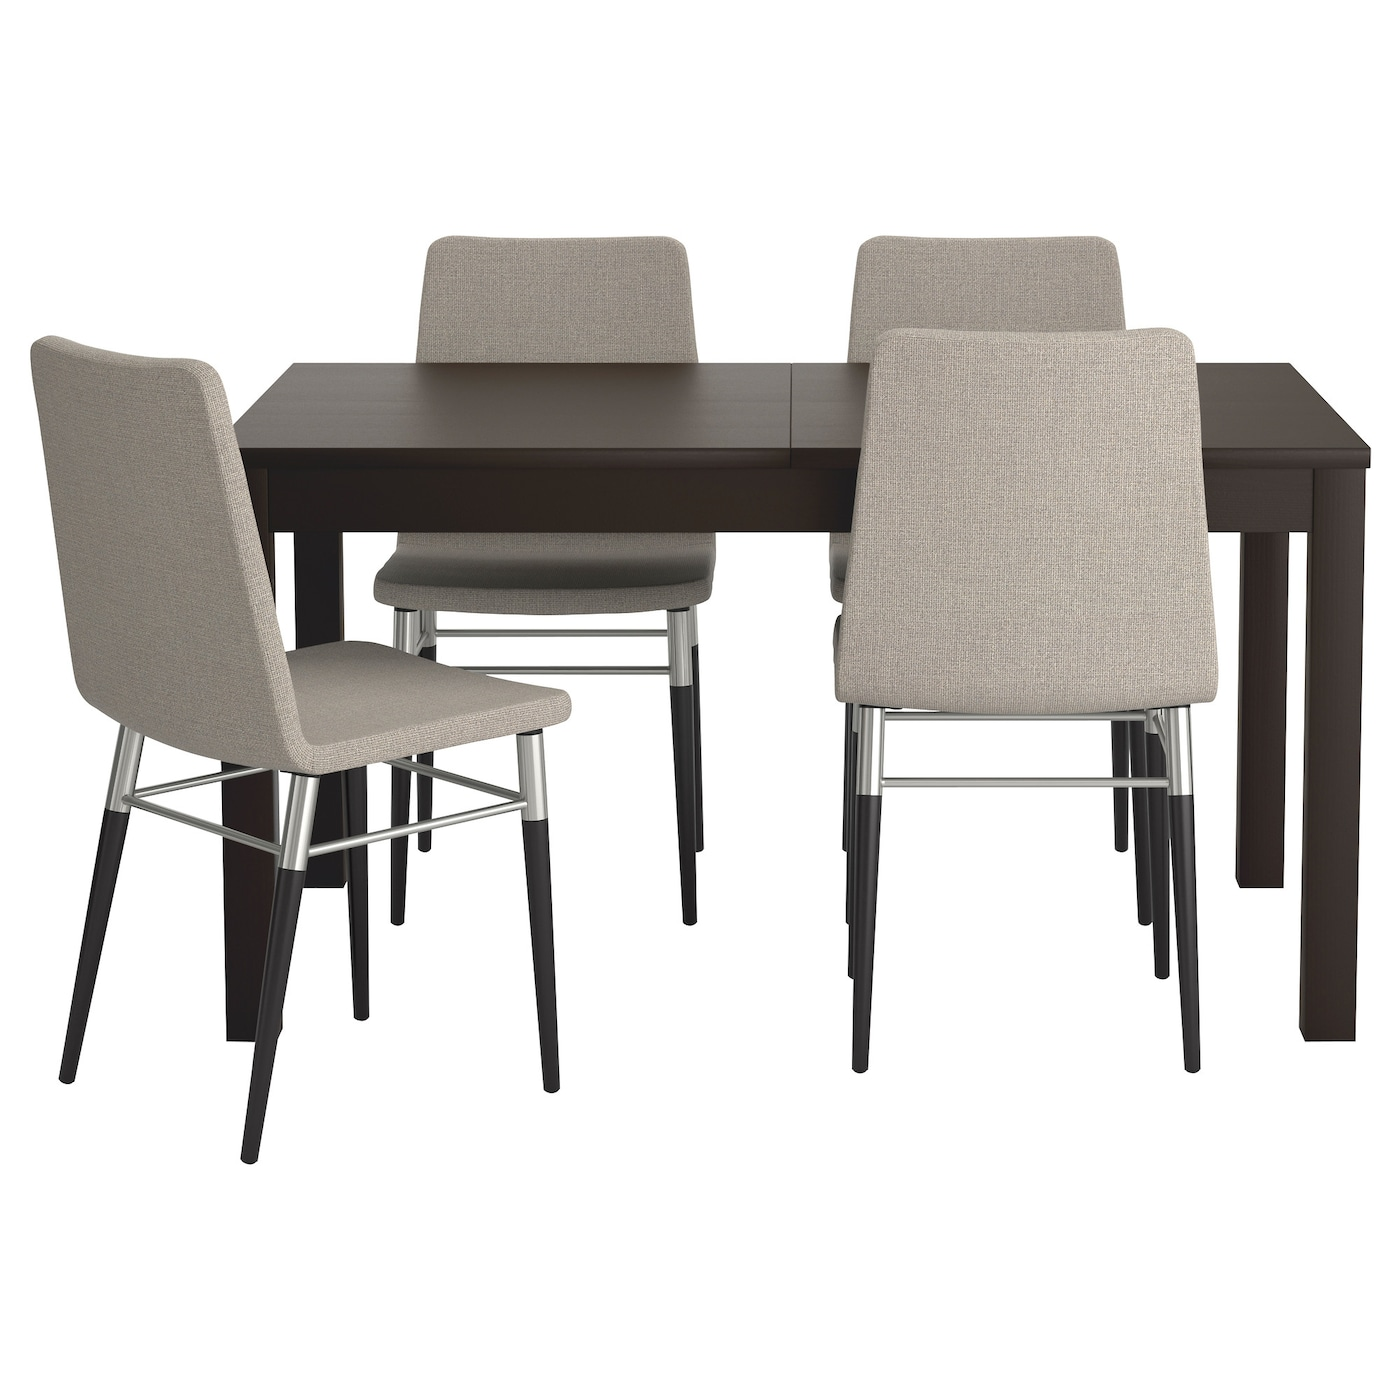 preben/bjursta table and 4 chairs brown-black/tenö light grey 140